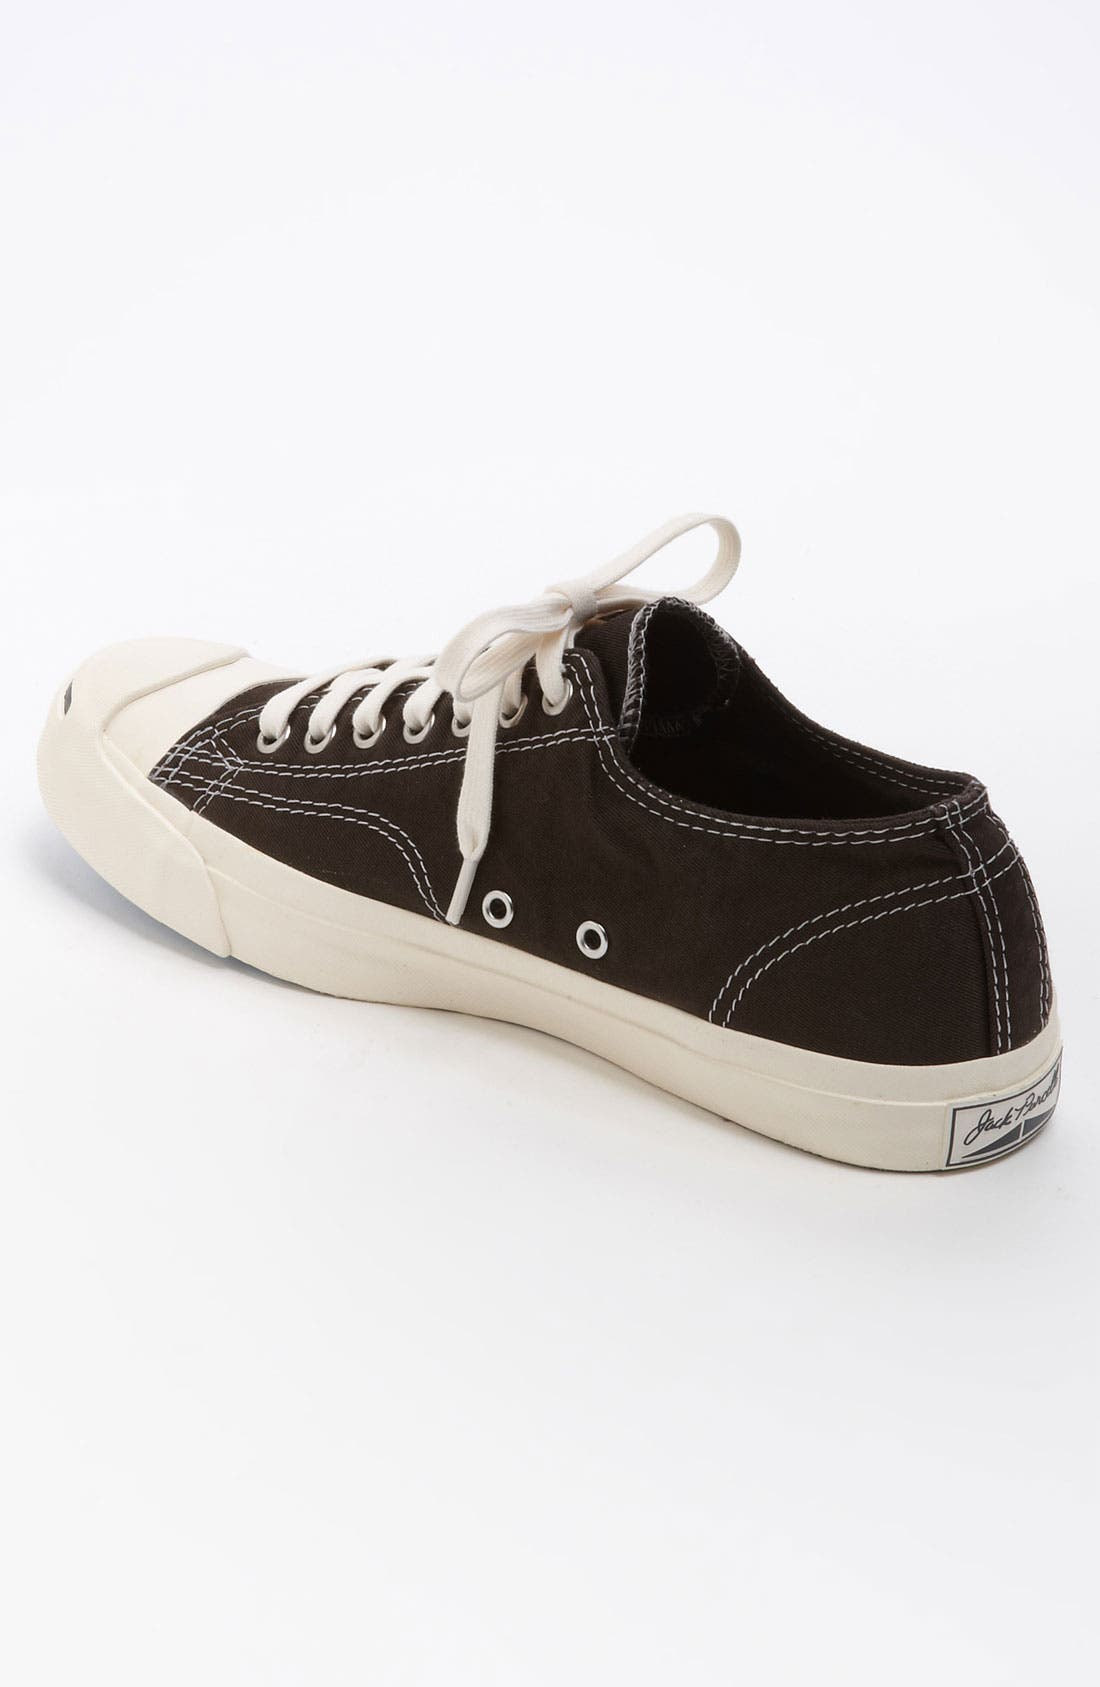 'Jack Purcell LTT' Sneaker,                             Alternate thumbnail 2, color,                             001